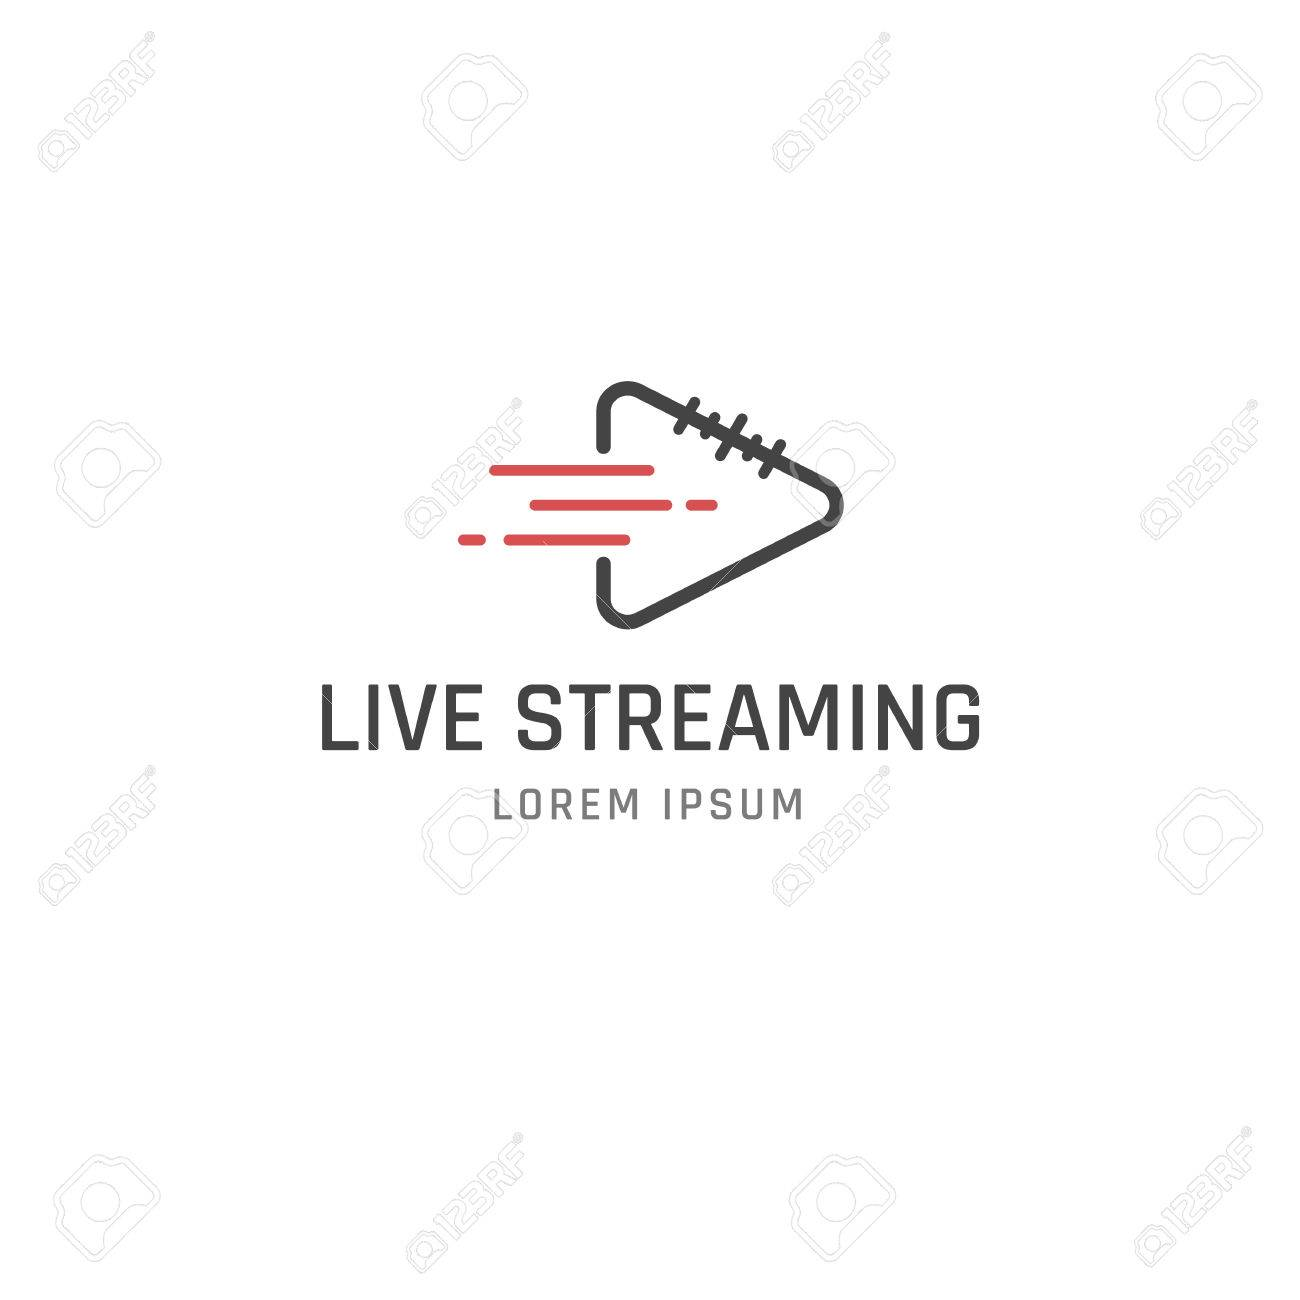 Live Streaming vector logo design template. Line style. - 51330197